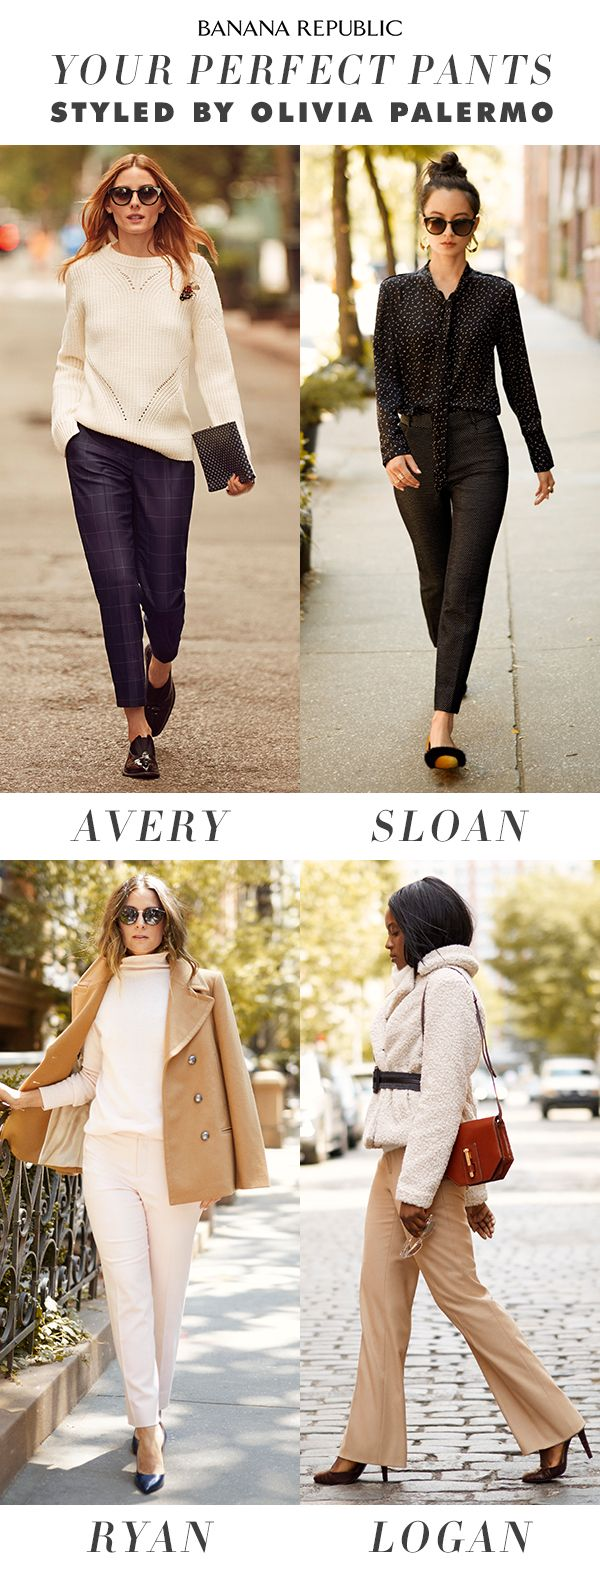 Introducing 4 amazing new pant fits. All universally flattering and ready to take on fall in a new crop of shades and fabrics. Styled by our style ambassador, Olivia Palermo herself. Find your perfect pair and you're more than halfway dressed.